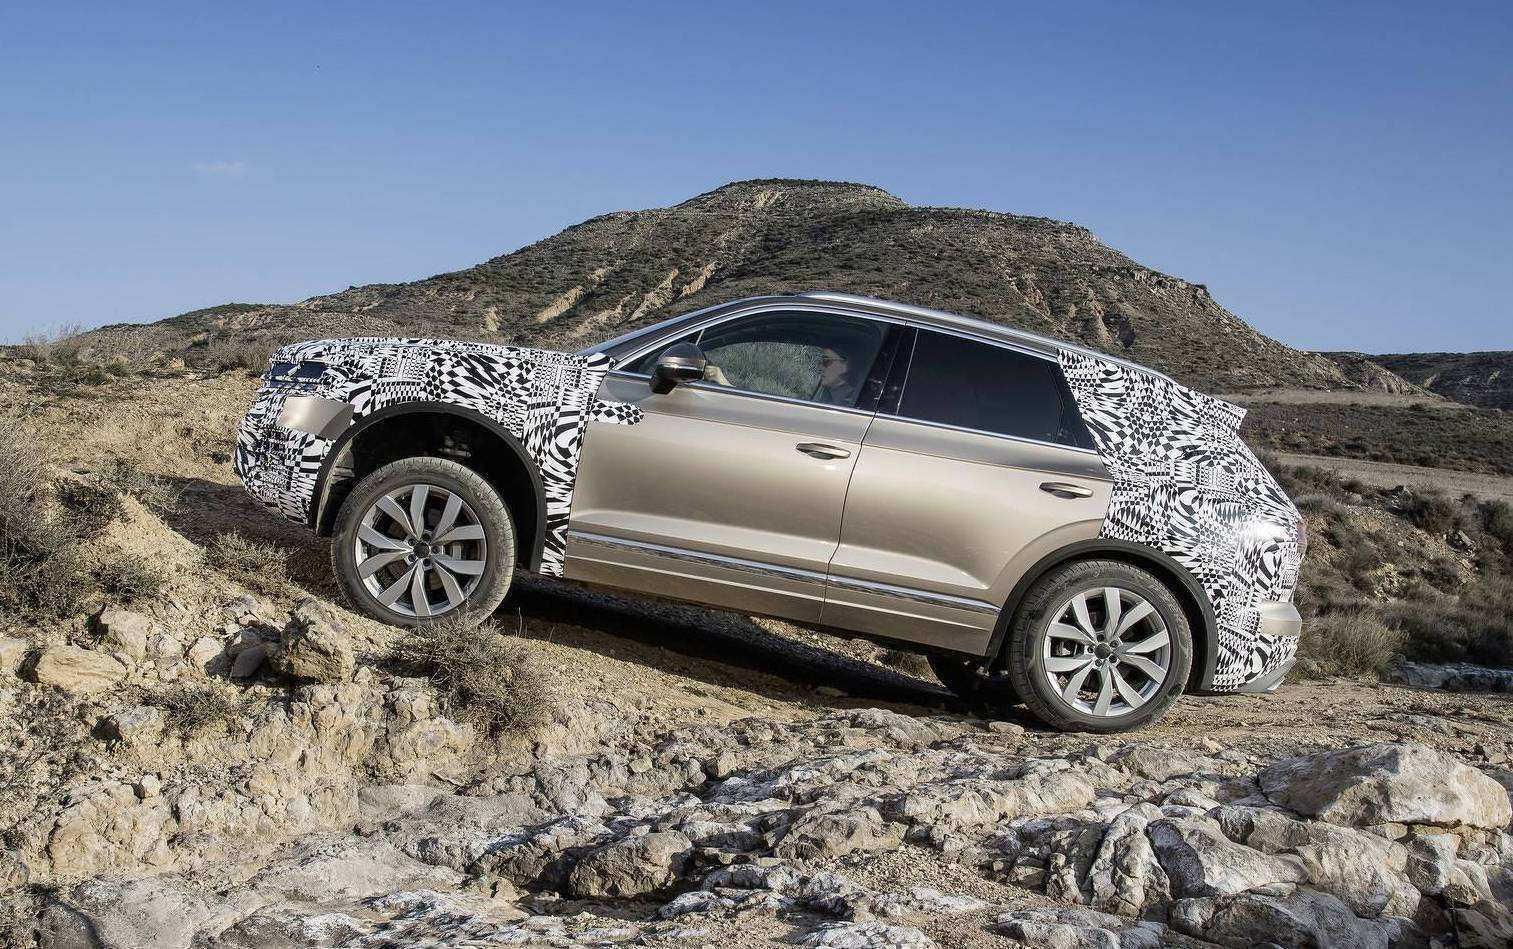 34 The Volkswagen Touareg 2019 Off Road Specs Images for Volkswagen Touareg 2019 Off Road Specs